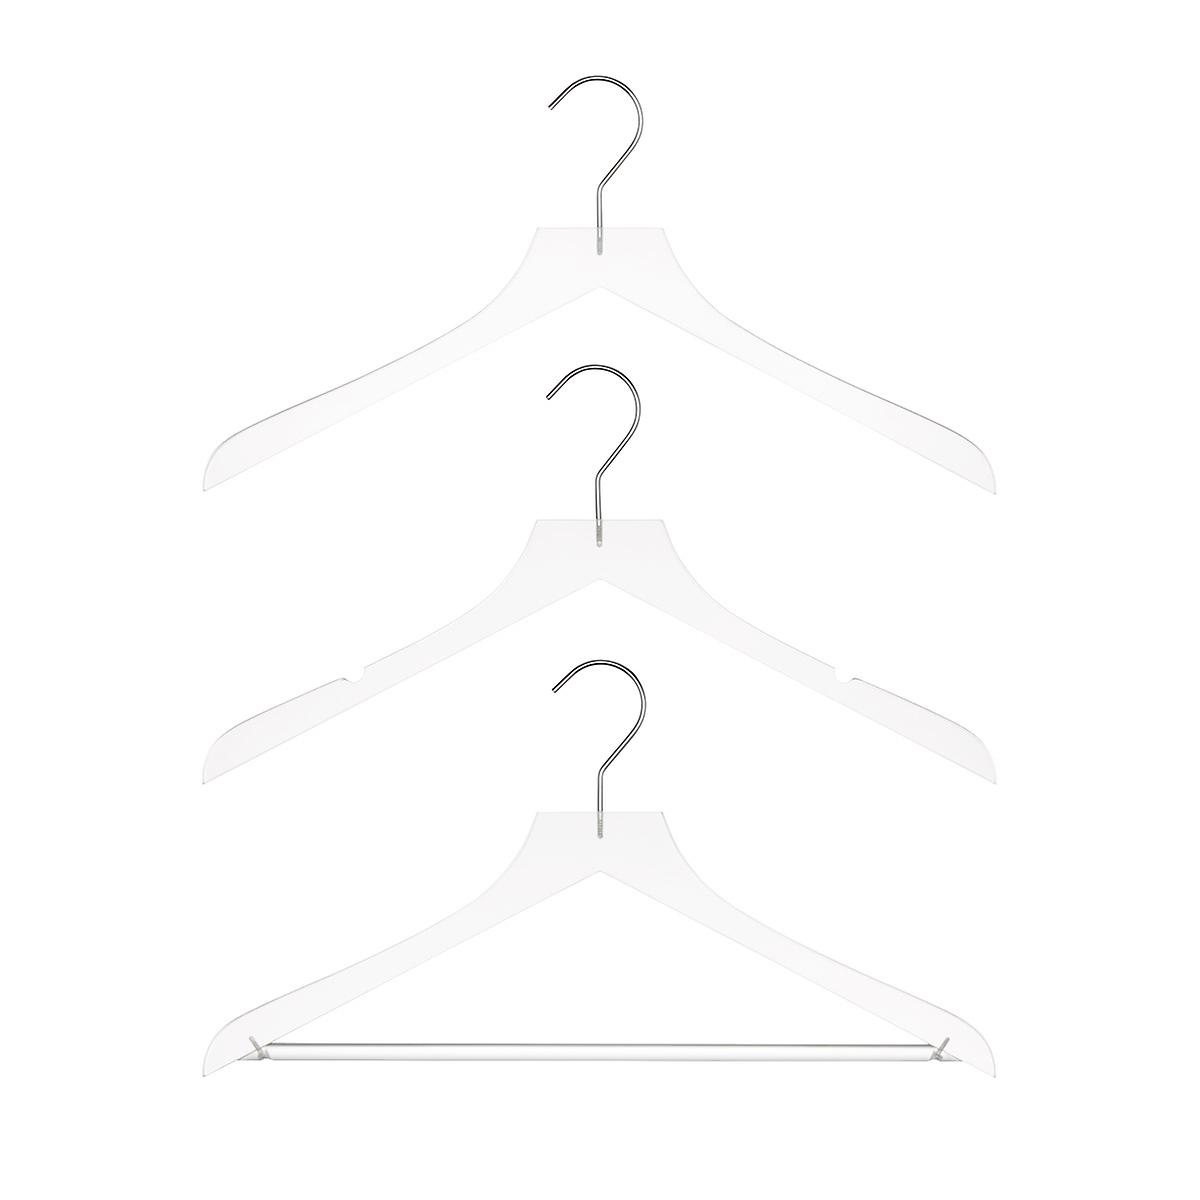 Frosted Acrylic Shirt & Blouse Hangers